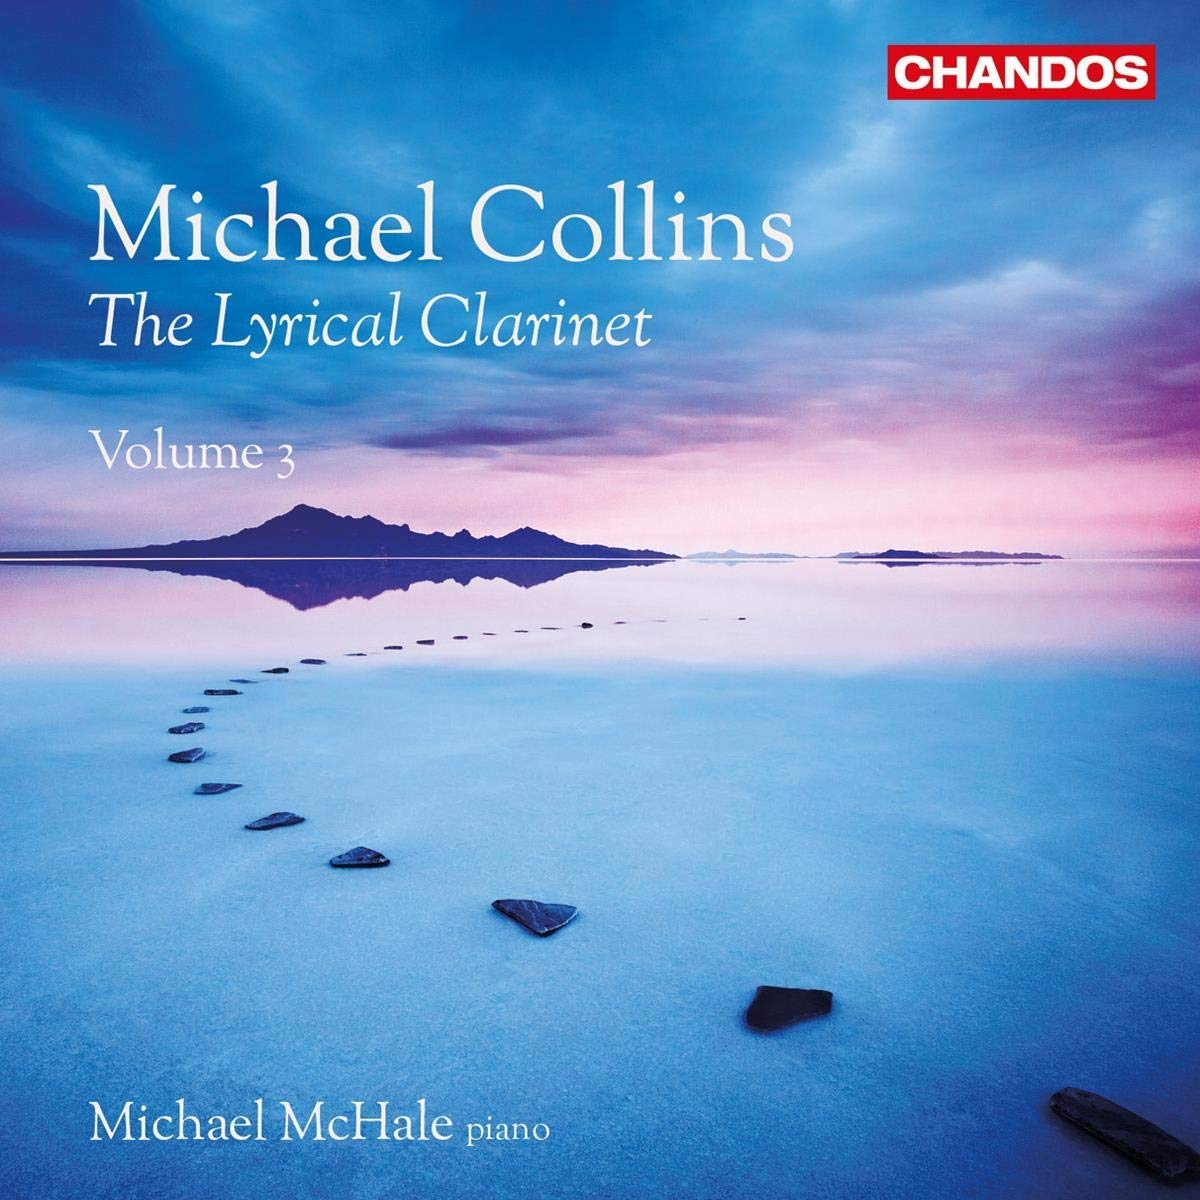 Review of The Lyrical Clarinet Vol 3 (Michael Collins)